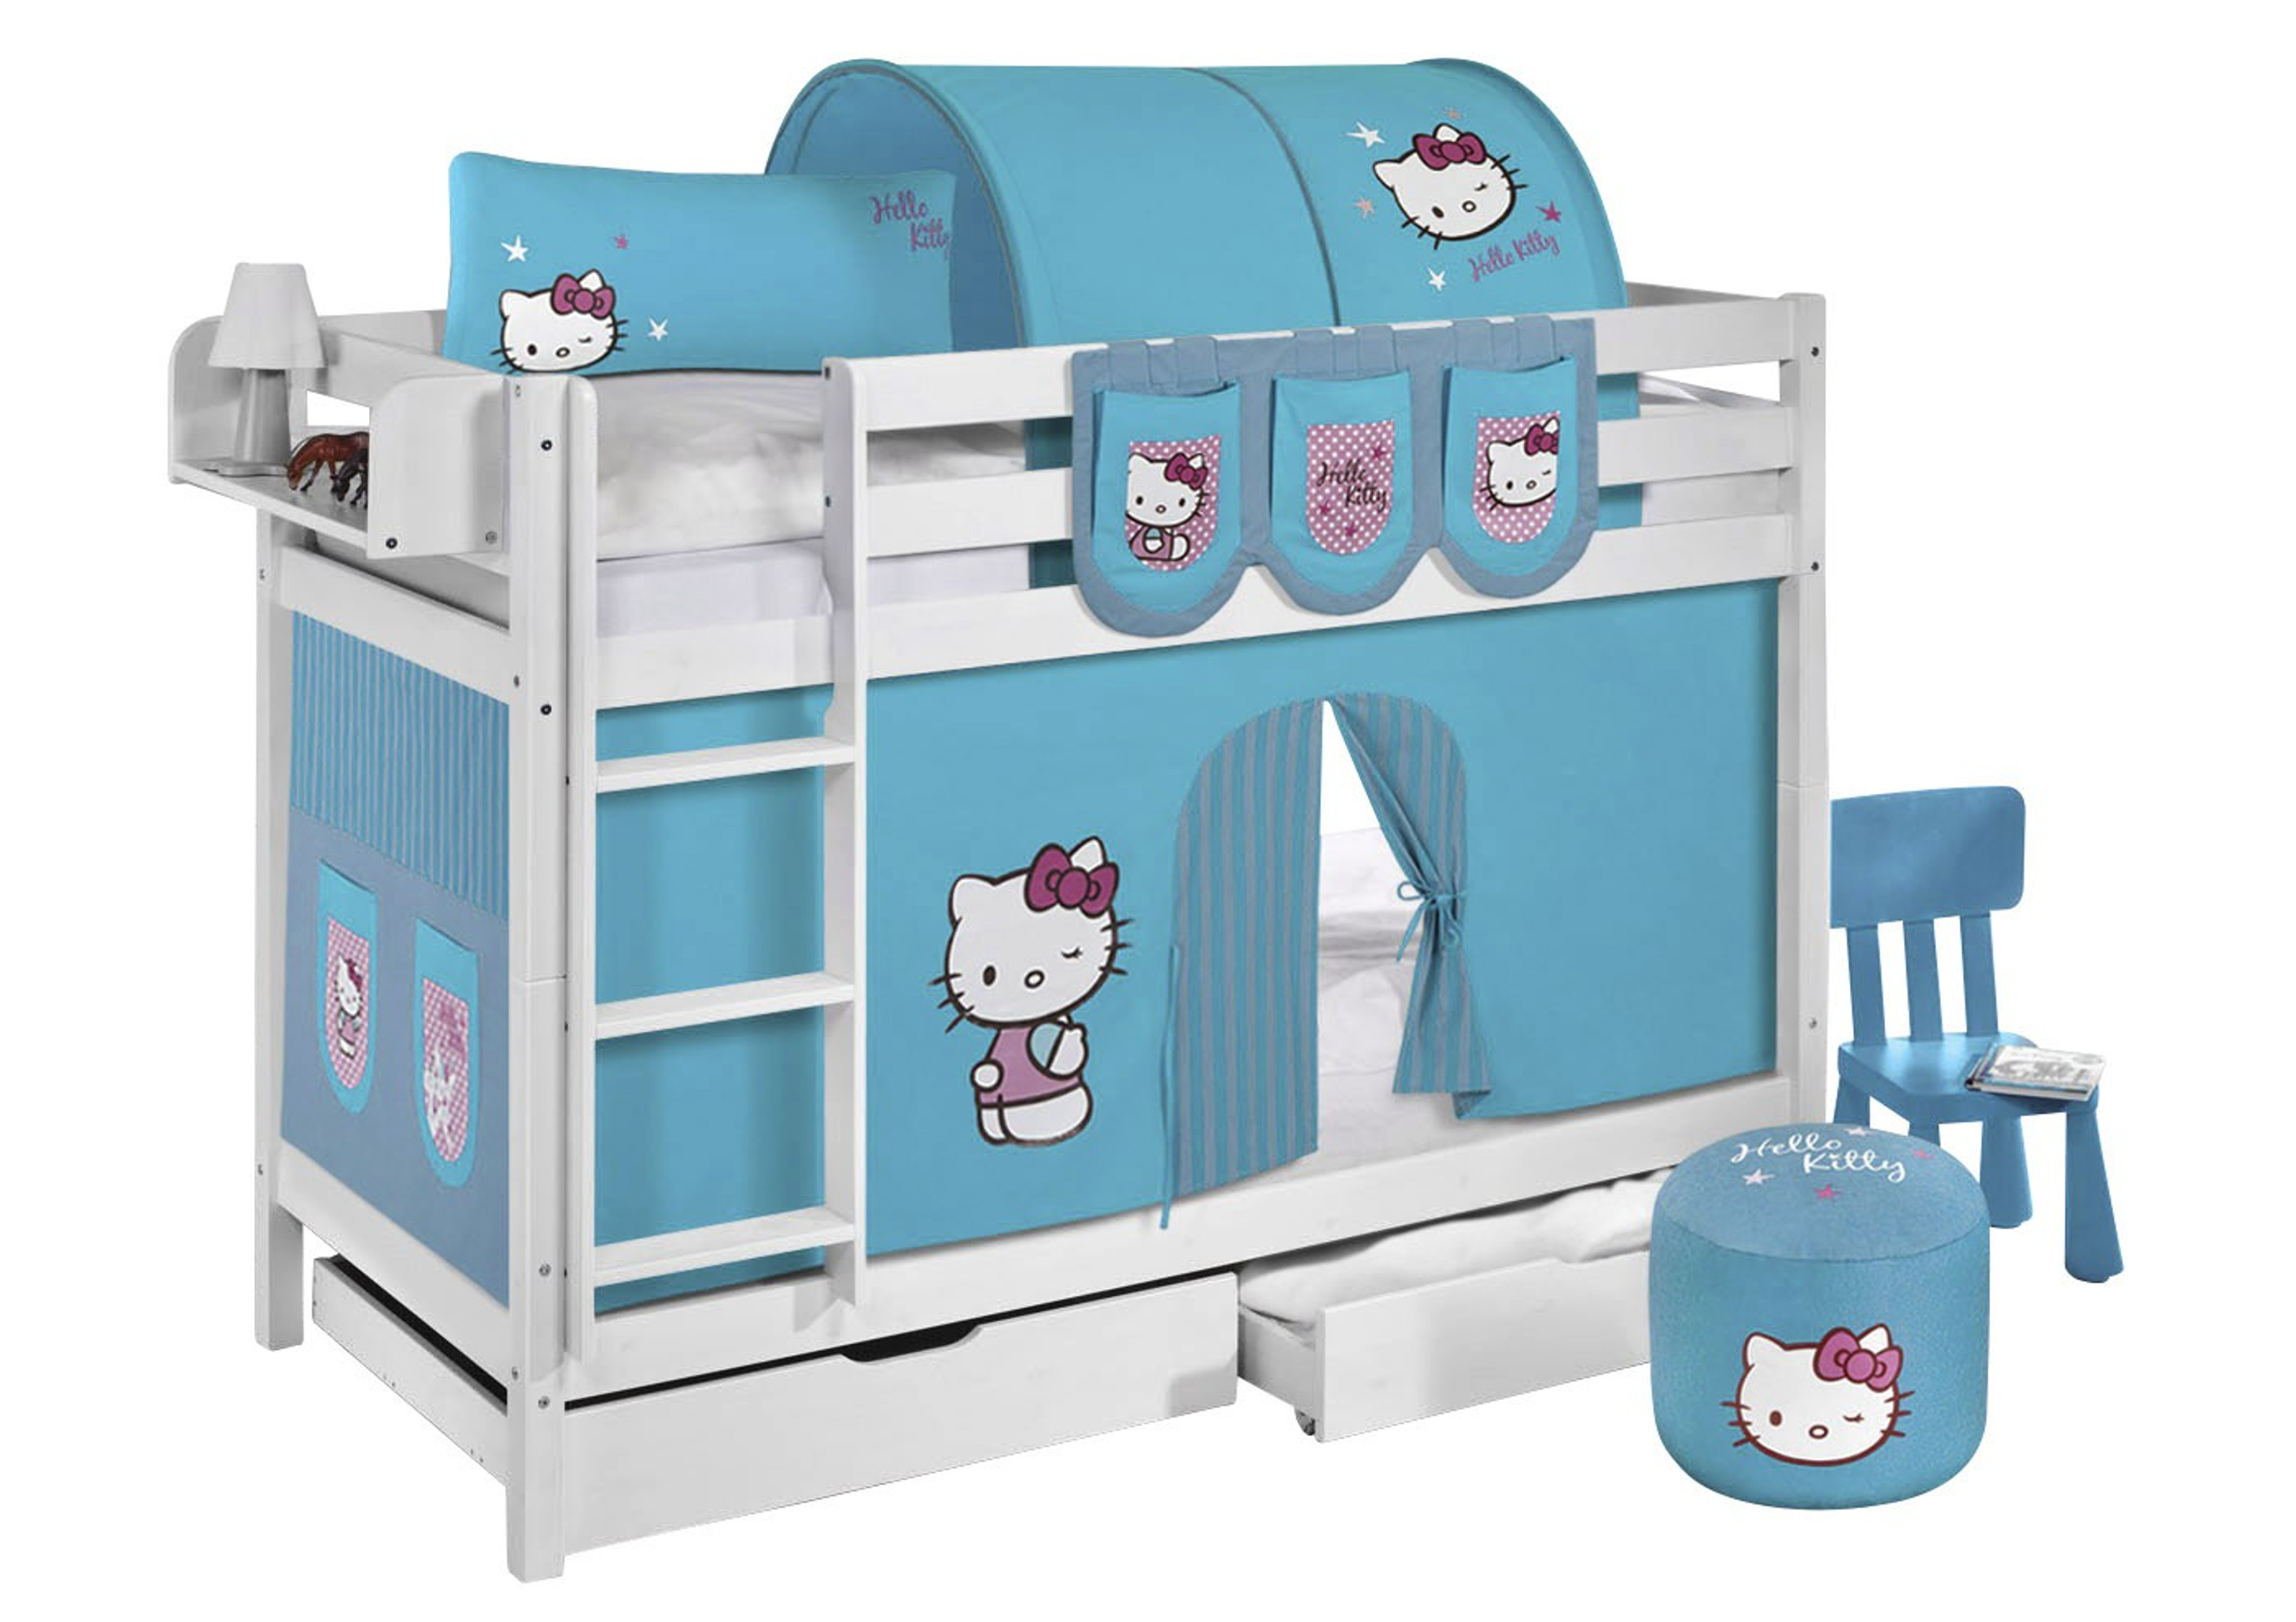 etagenbett hello kitty t rkis wei mit vorhang und lattenroste jelle m bel baby. Black Bedroom Furniture Sets. Home Design Ideas